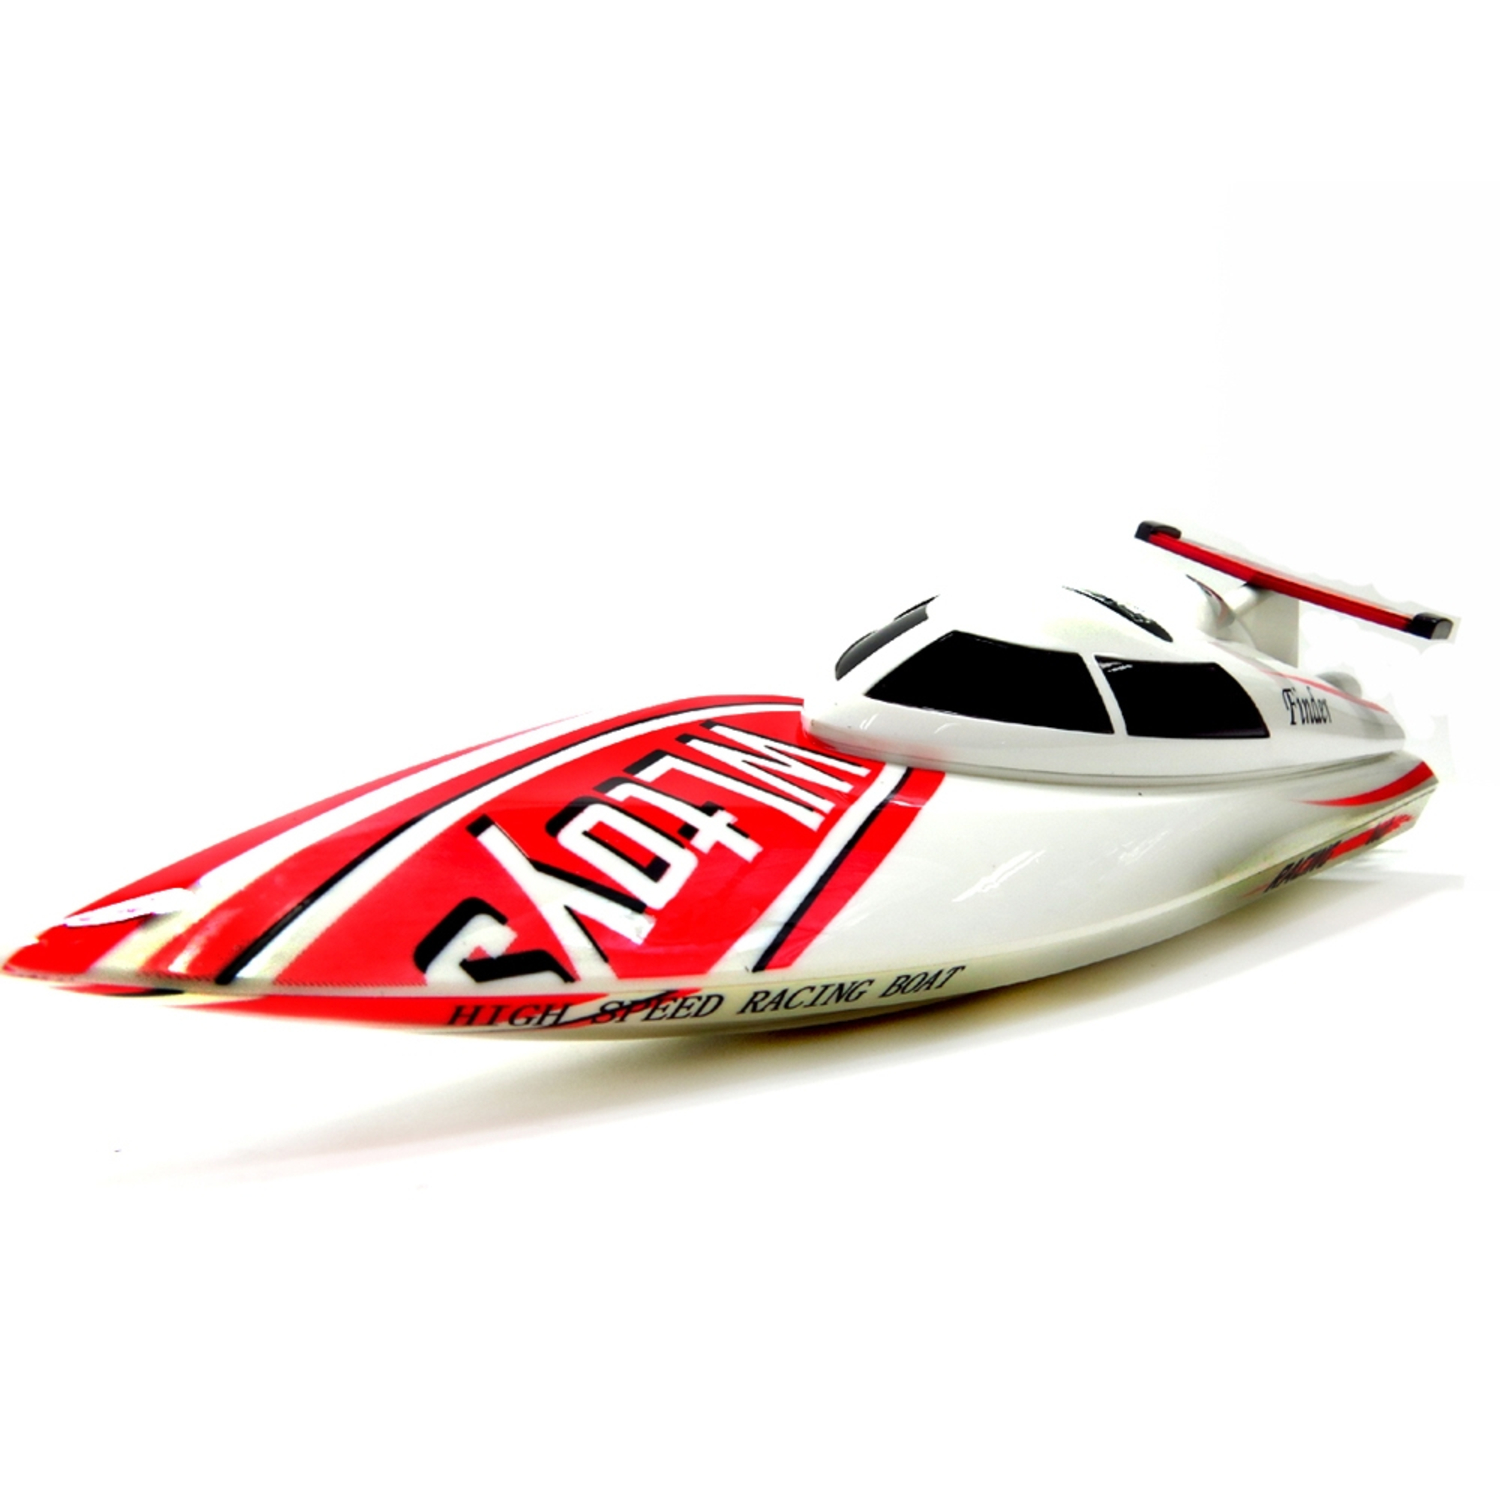 2.4GHZ Freedom High Speed Racing Boat Radio Control Ship Watercraft White (Gift Idea) by